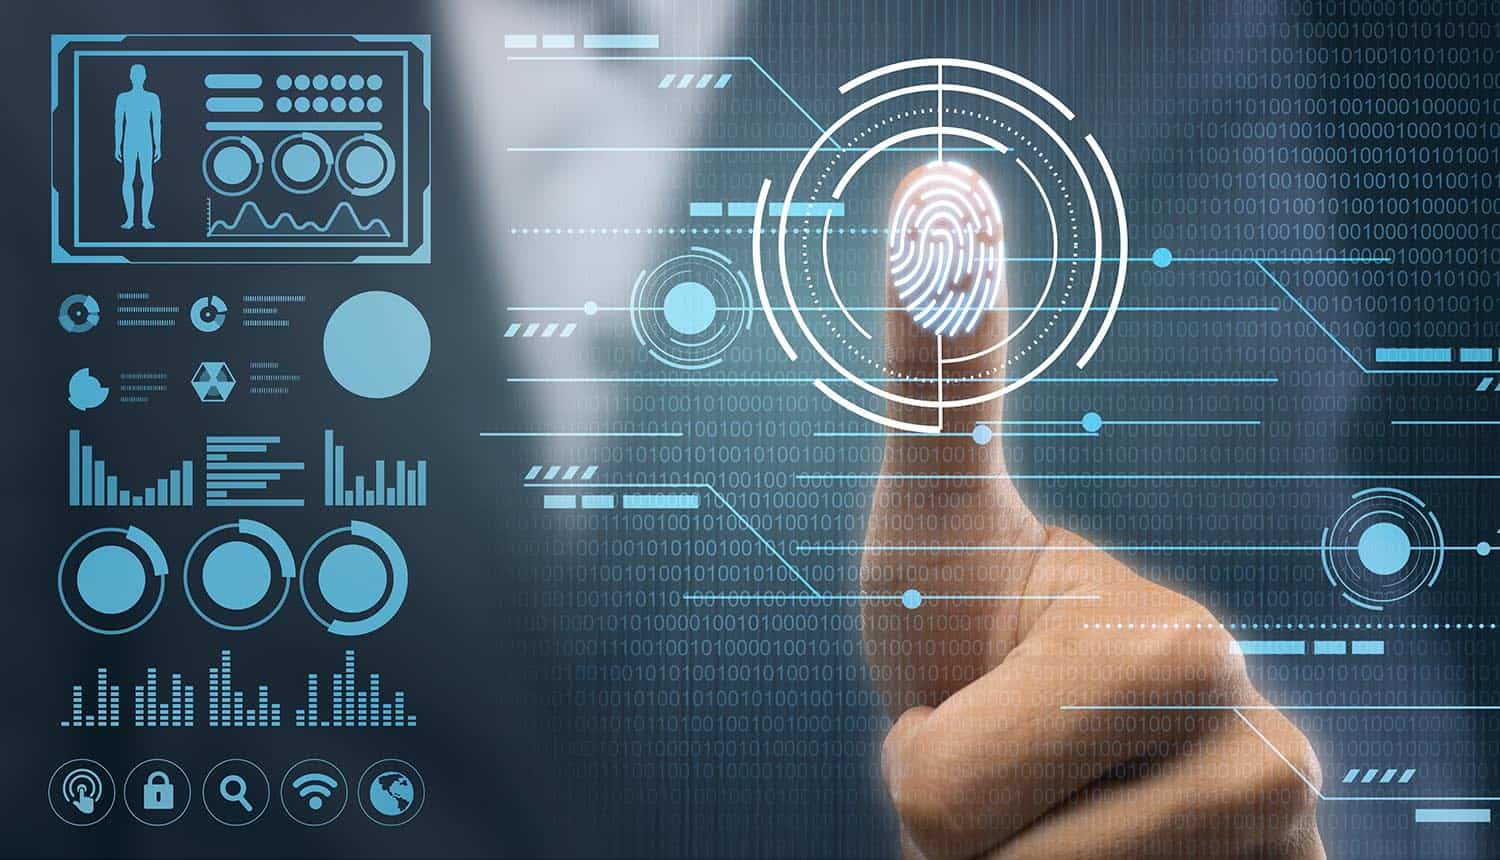 Man touching virtual panel with finger showing identity management